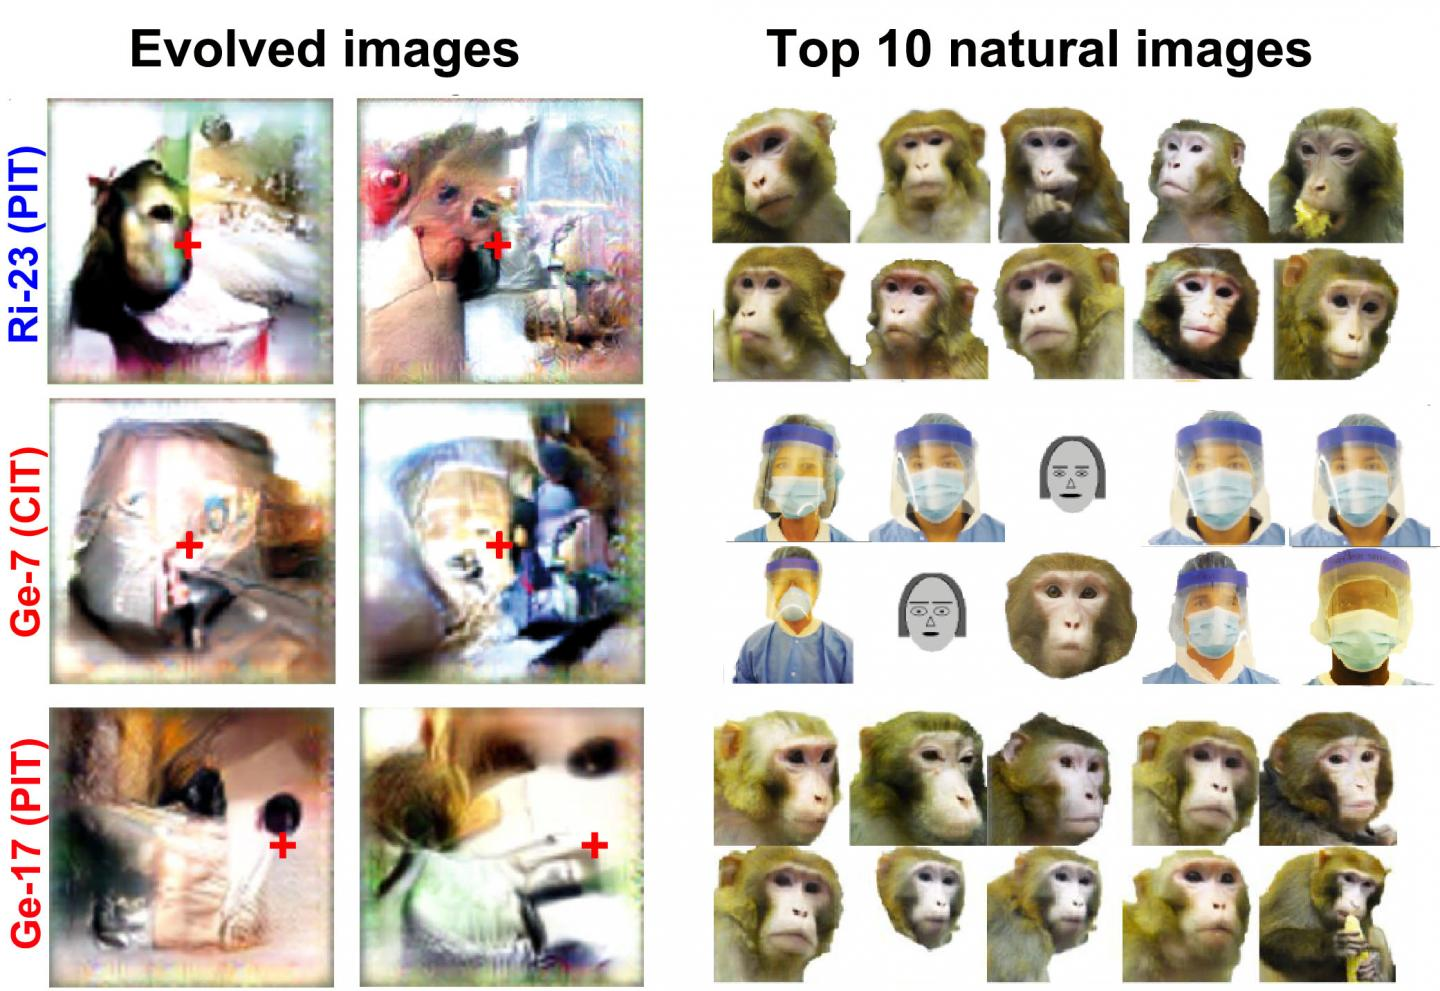 on the left are a series of six images that are the evolved images. they are creepy collages of mismatched faces in color. on the right is 10 natural images also in color but show more complete faces